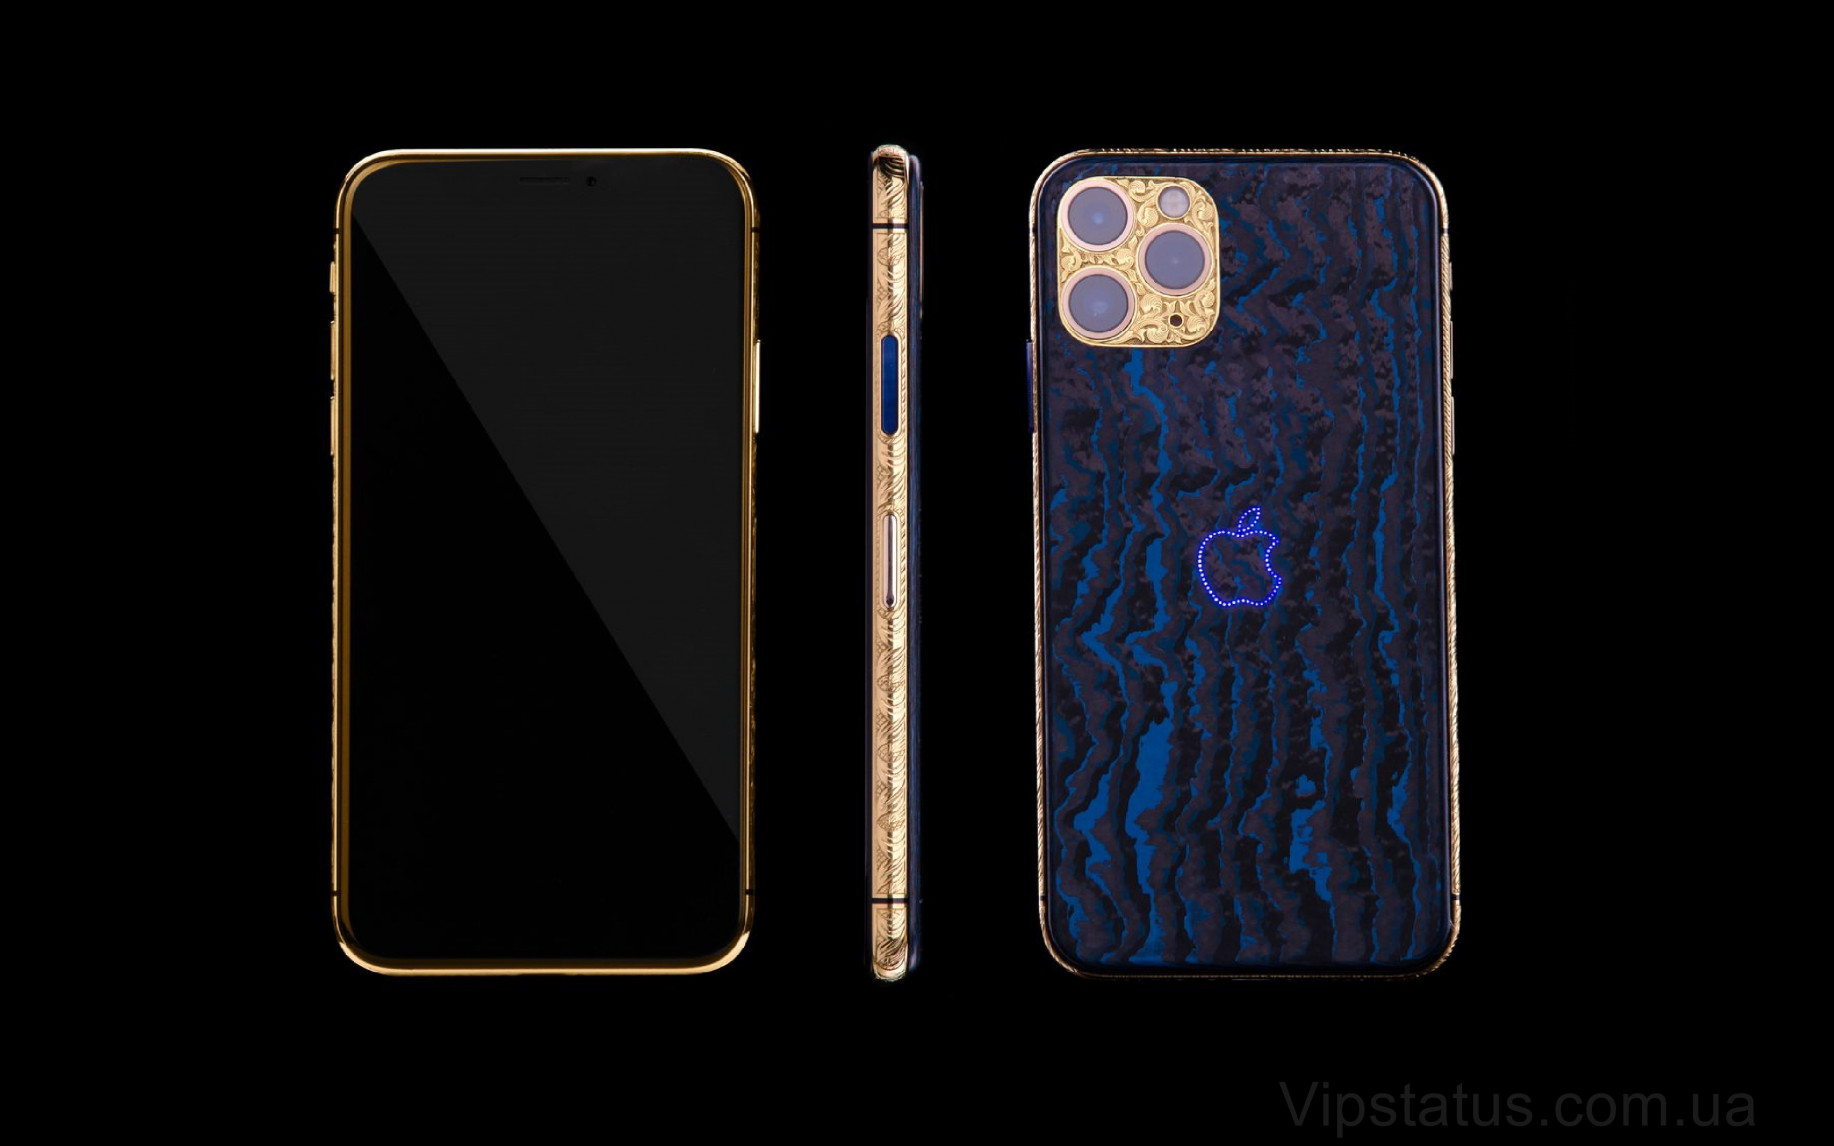 Elite Blue Dream IPHONE XS 512 GB Blue Dream IPHONE XS 512 GB image 4